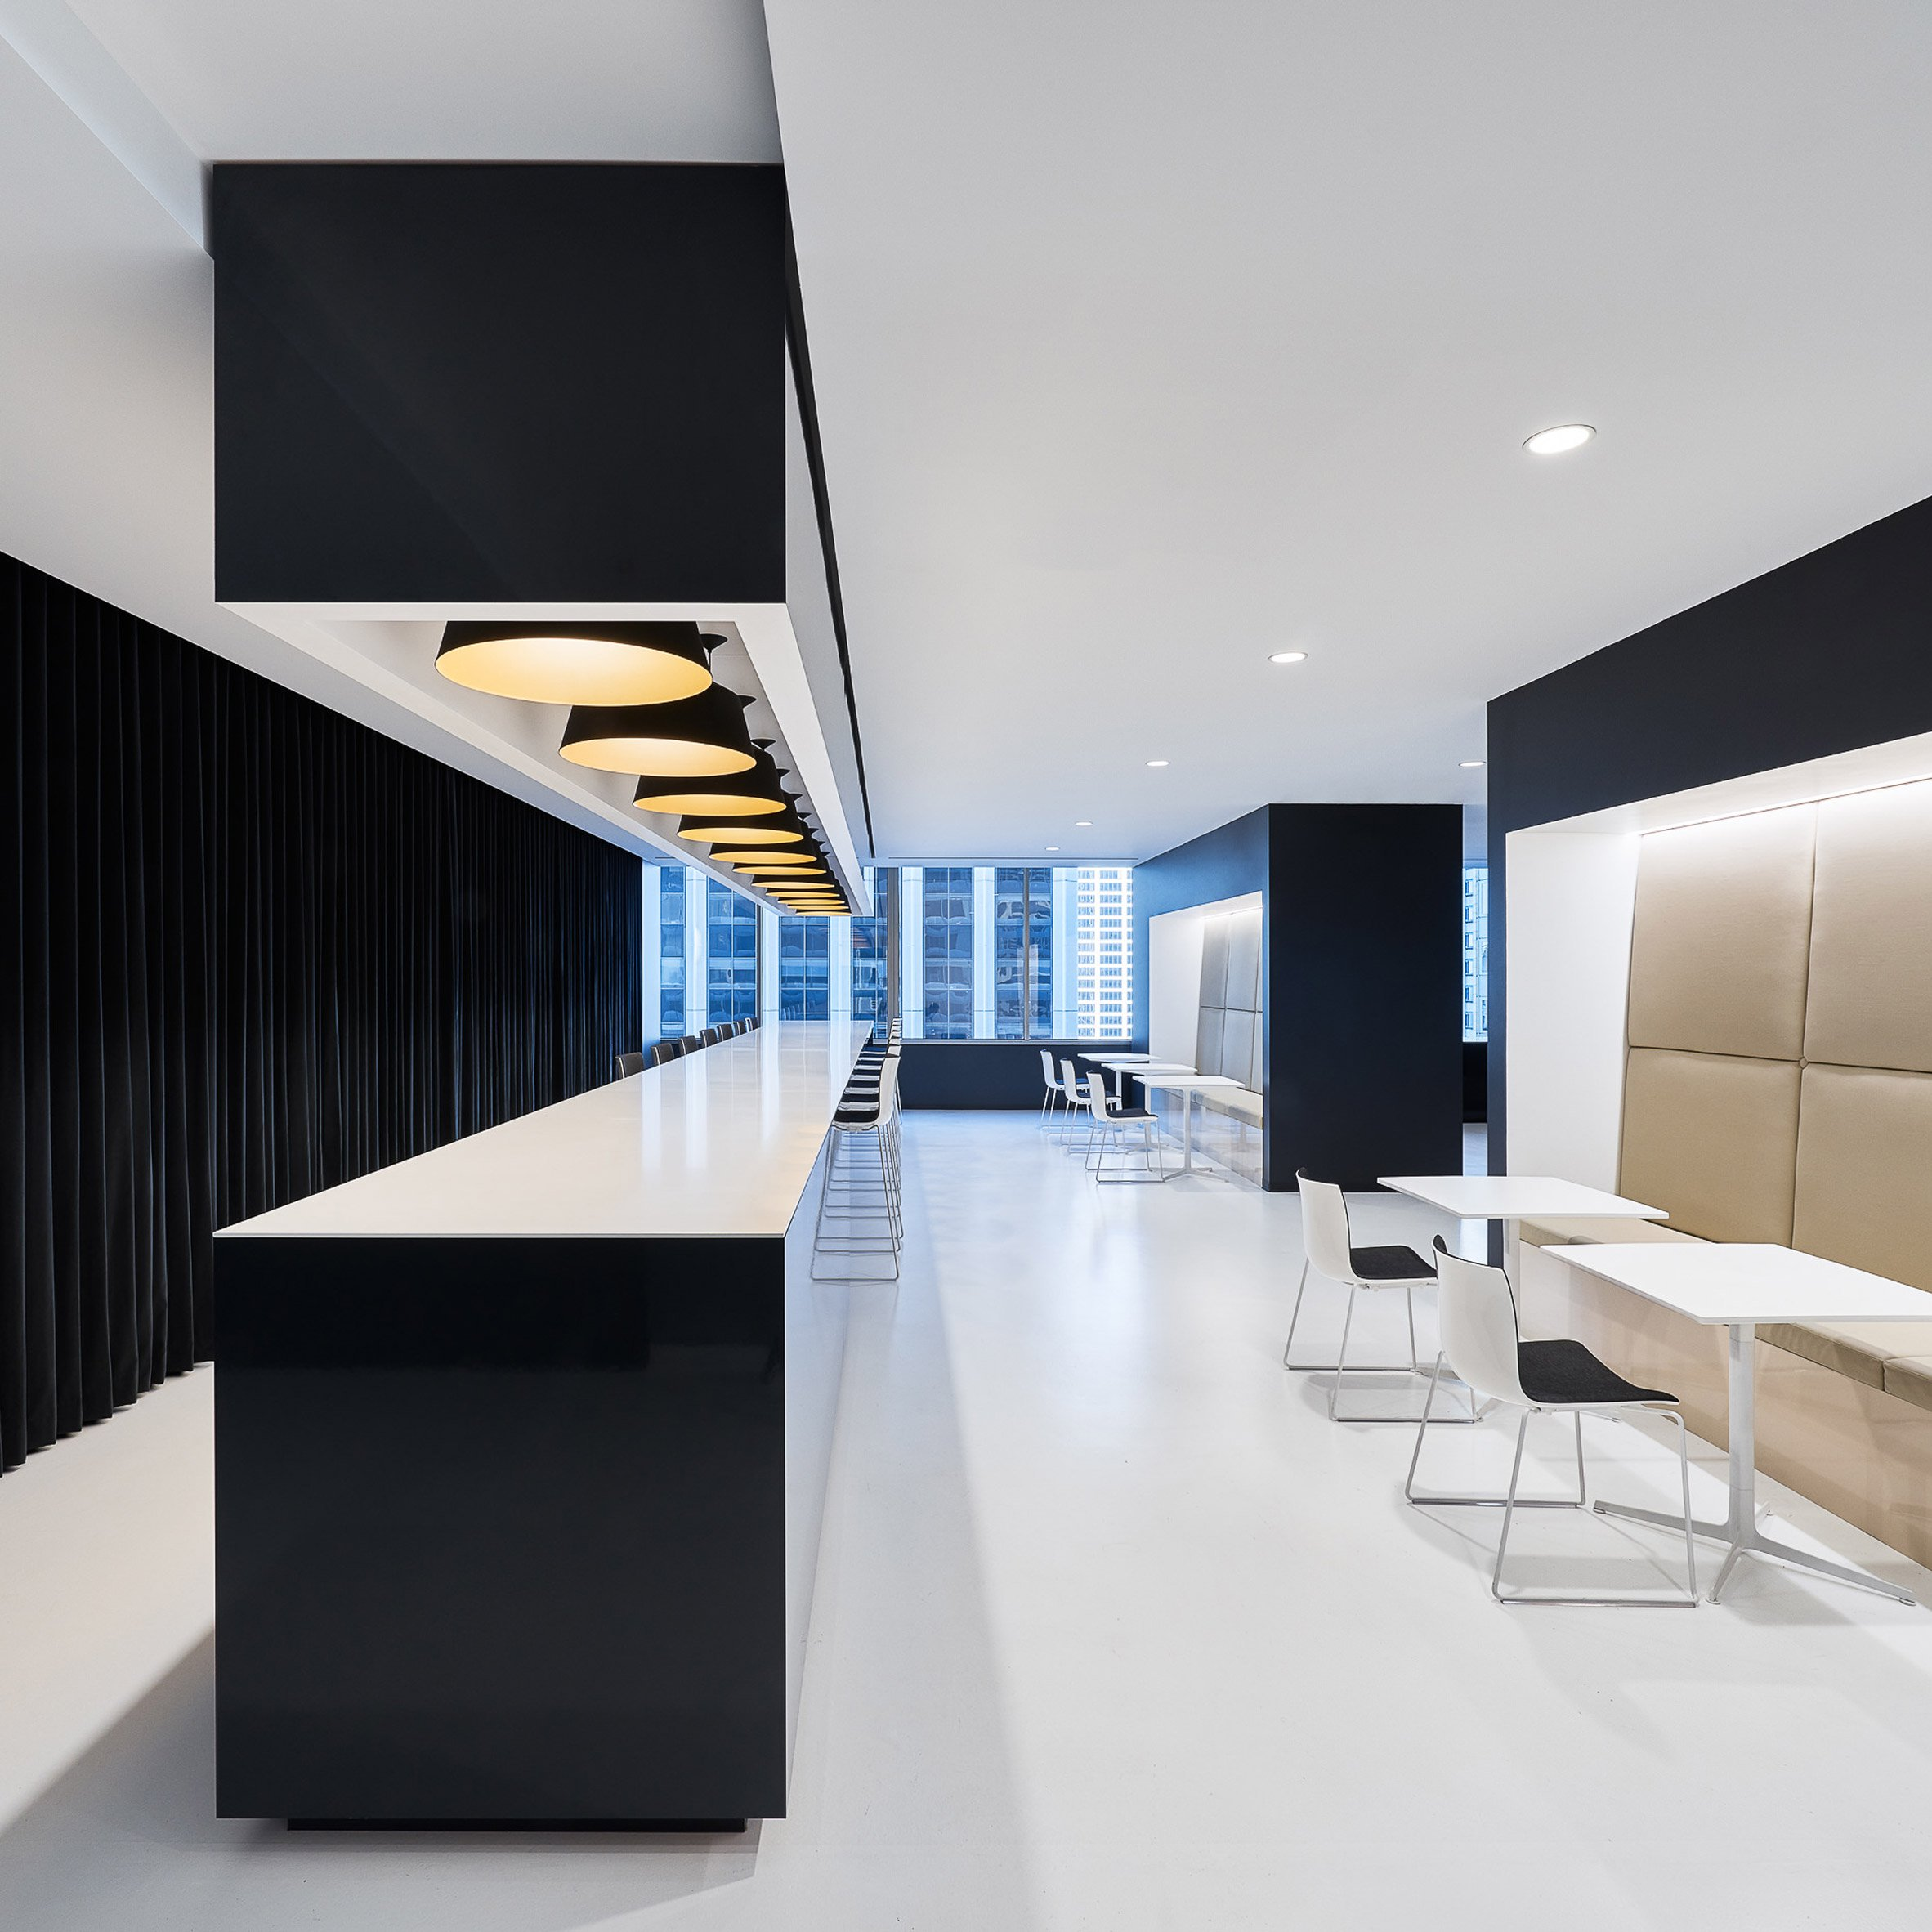 Garcia Tamjidi Architecture Design created this black and white office space for beauty brand Kendo - San Francisco, CA